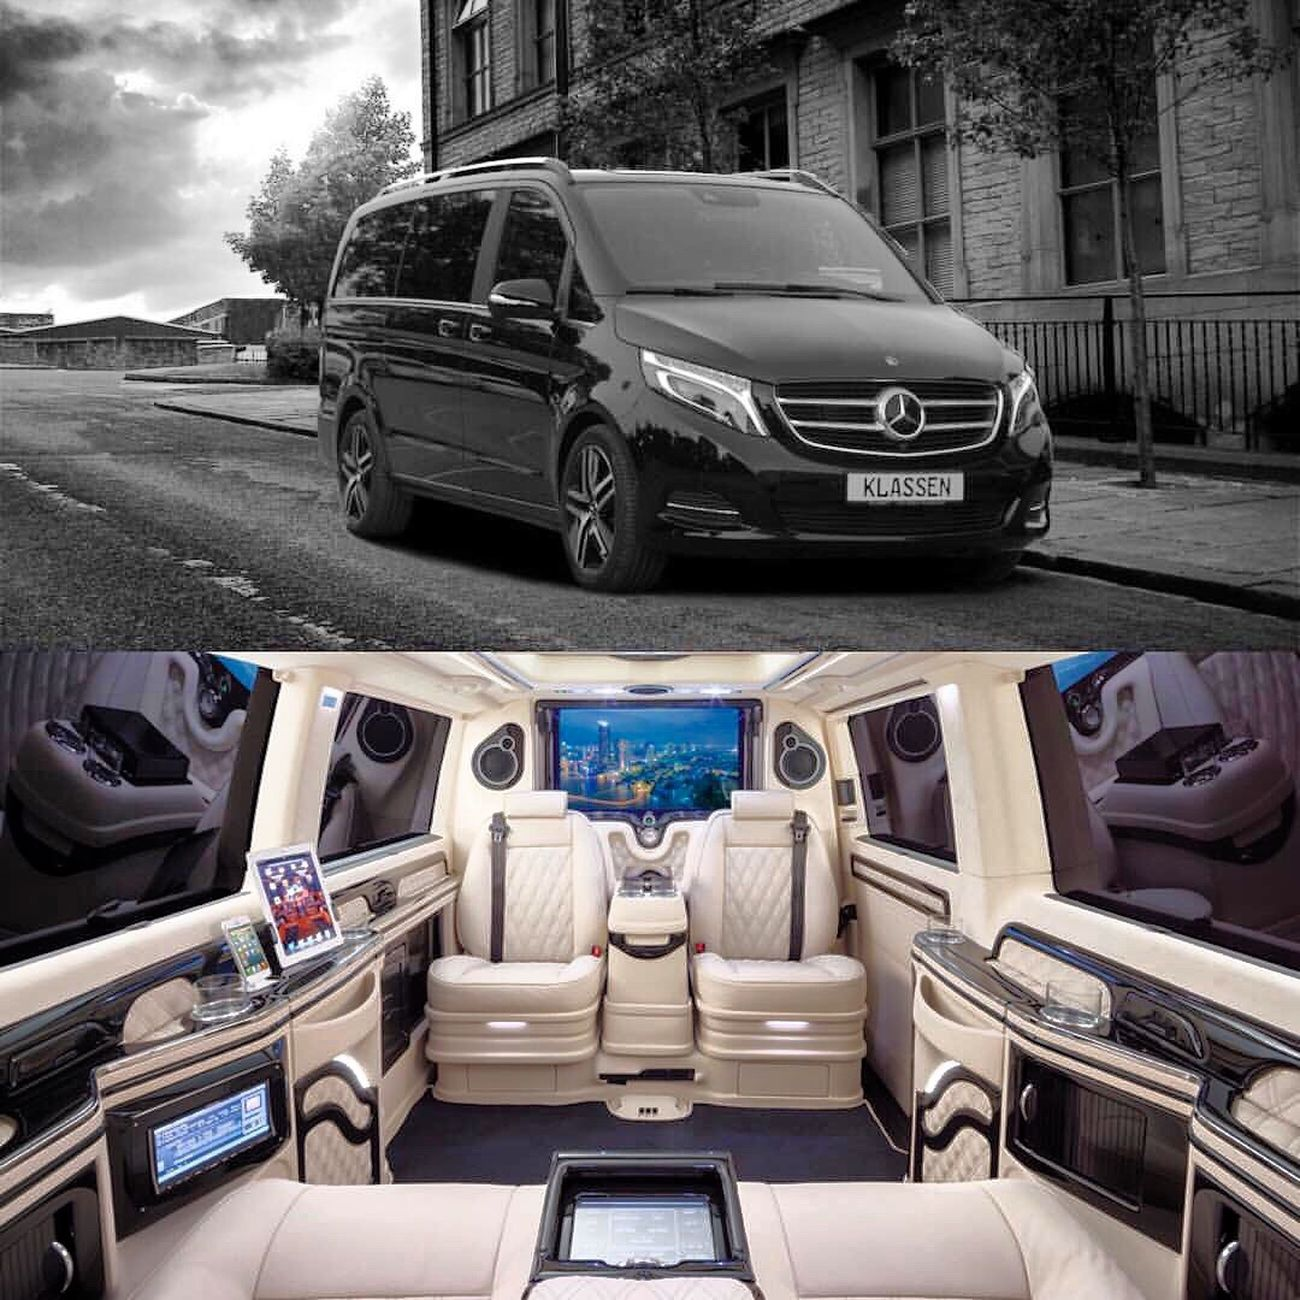 Klassen LUXURY Business Luxury van Vip Luxury Luxurylifestyle  Bestone Vclass Sclass  First Eyeem Photo